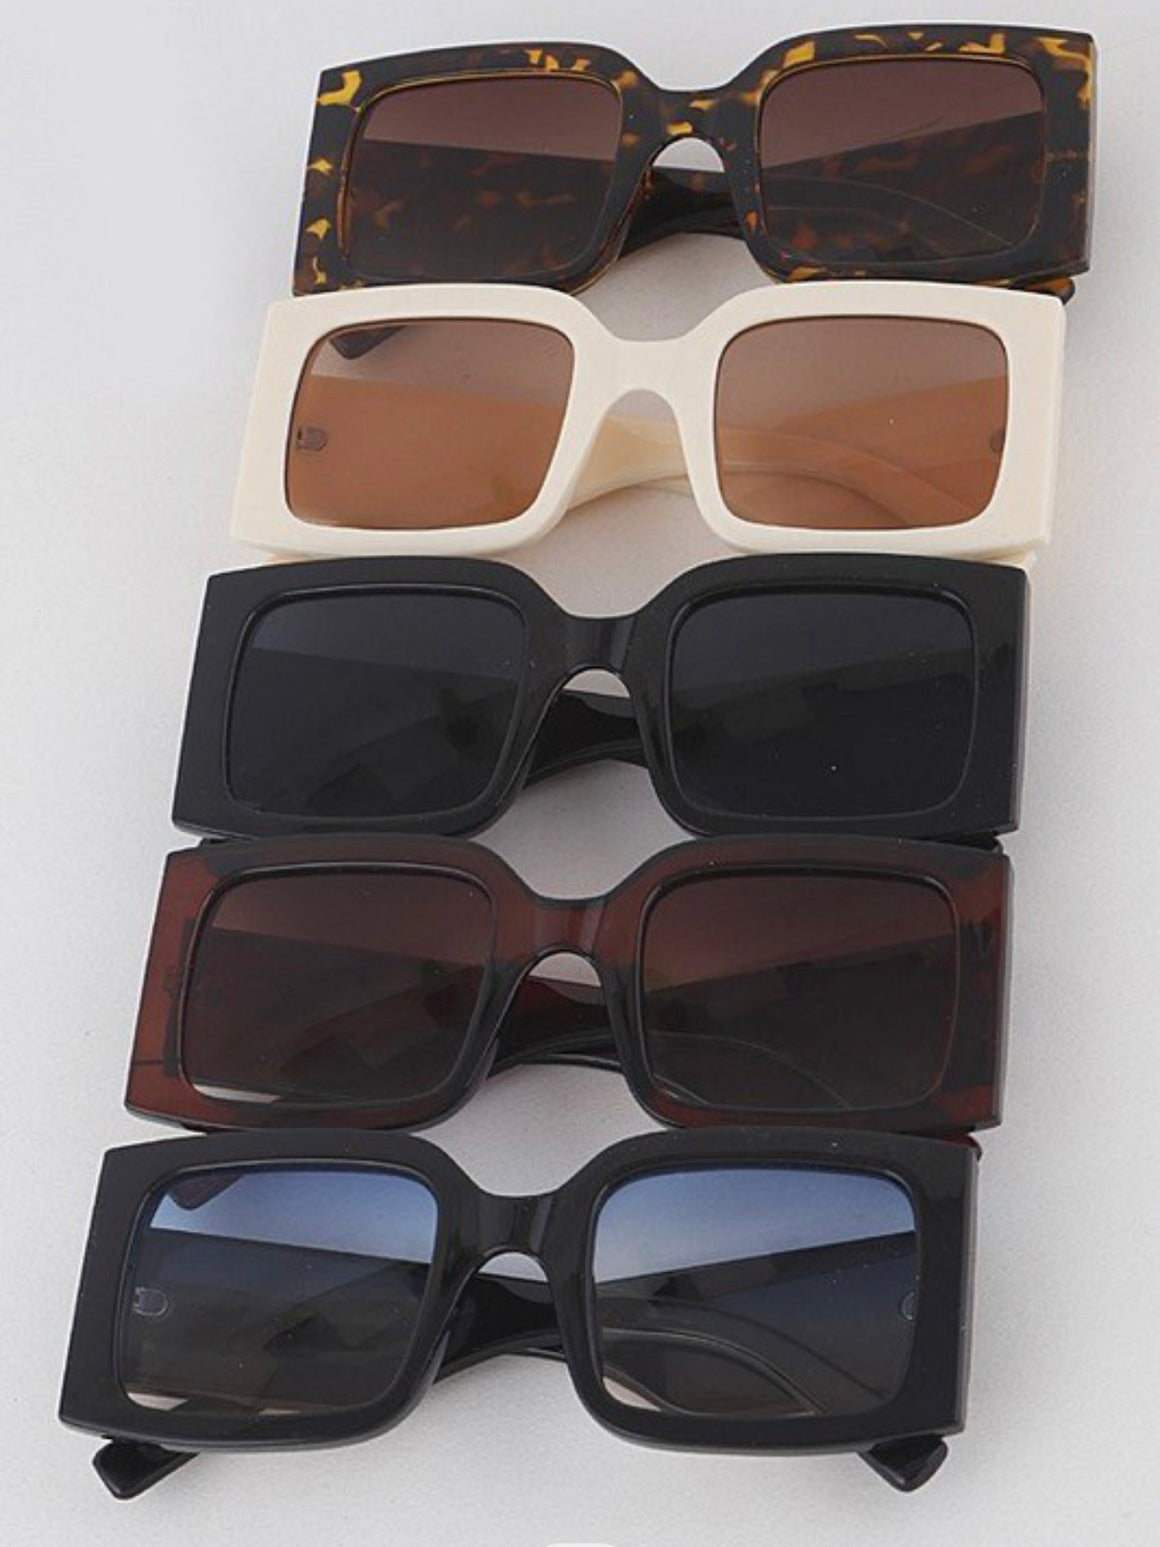 Sunshine Shades